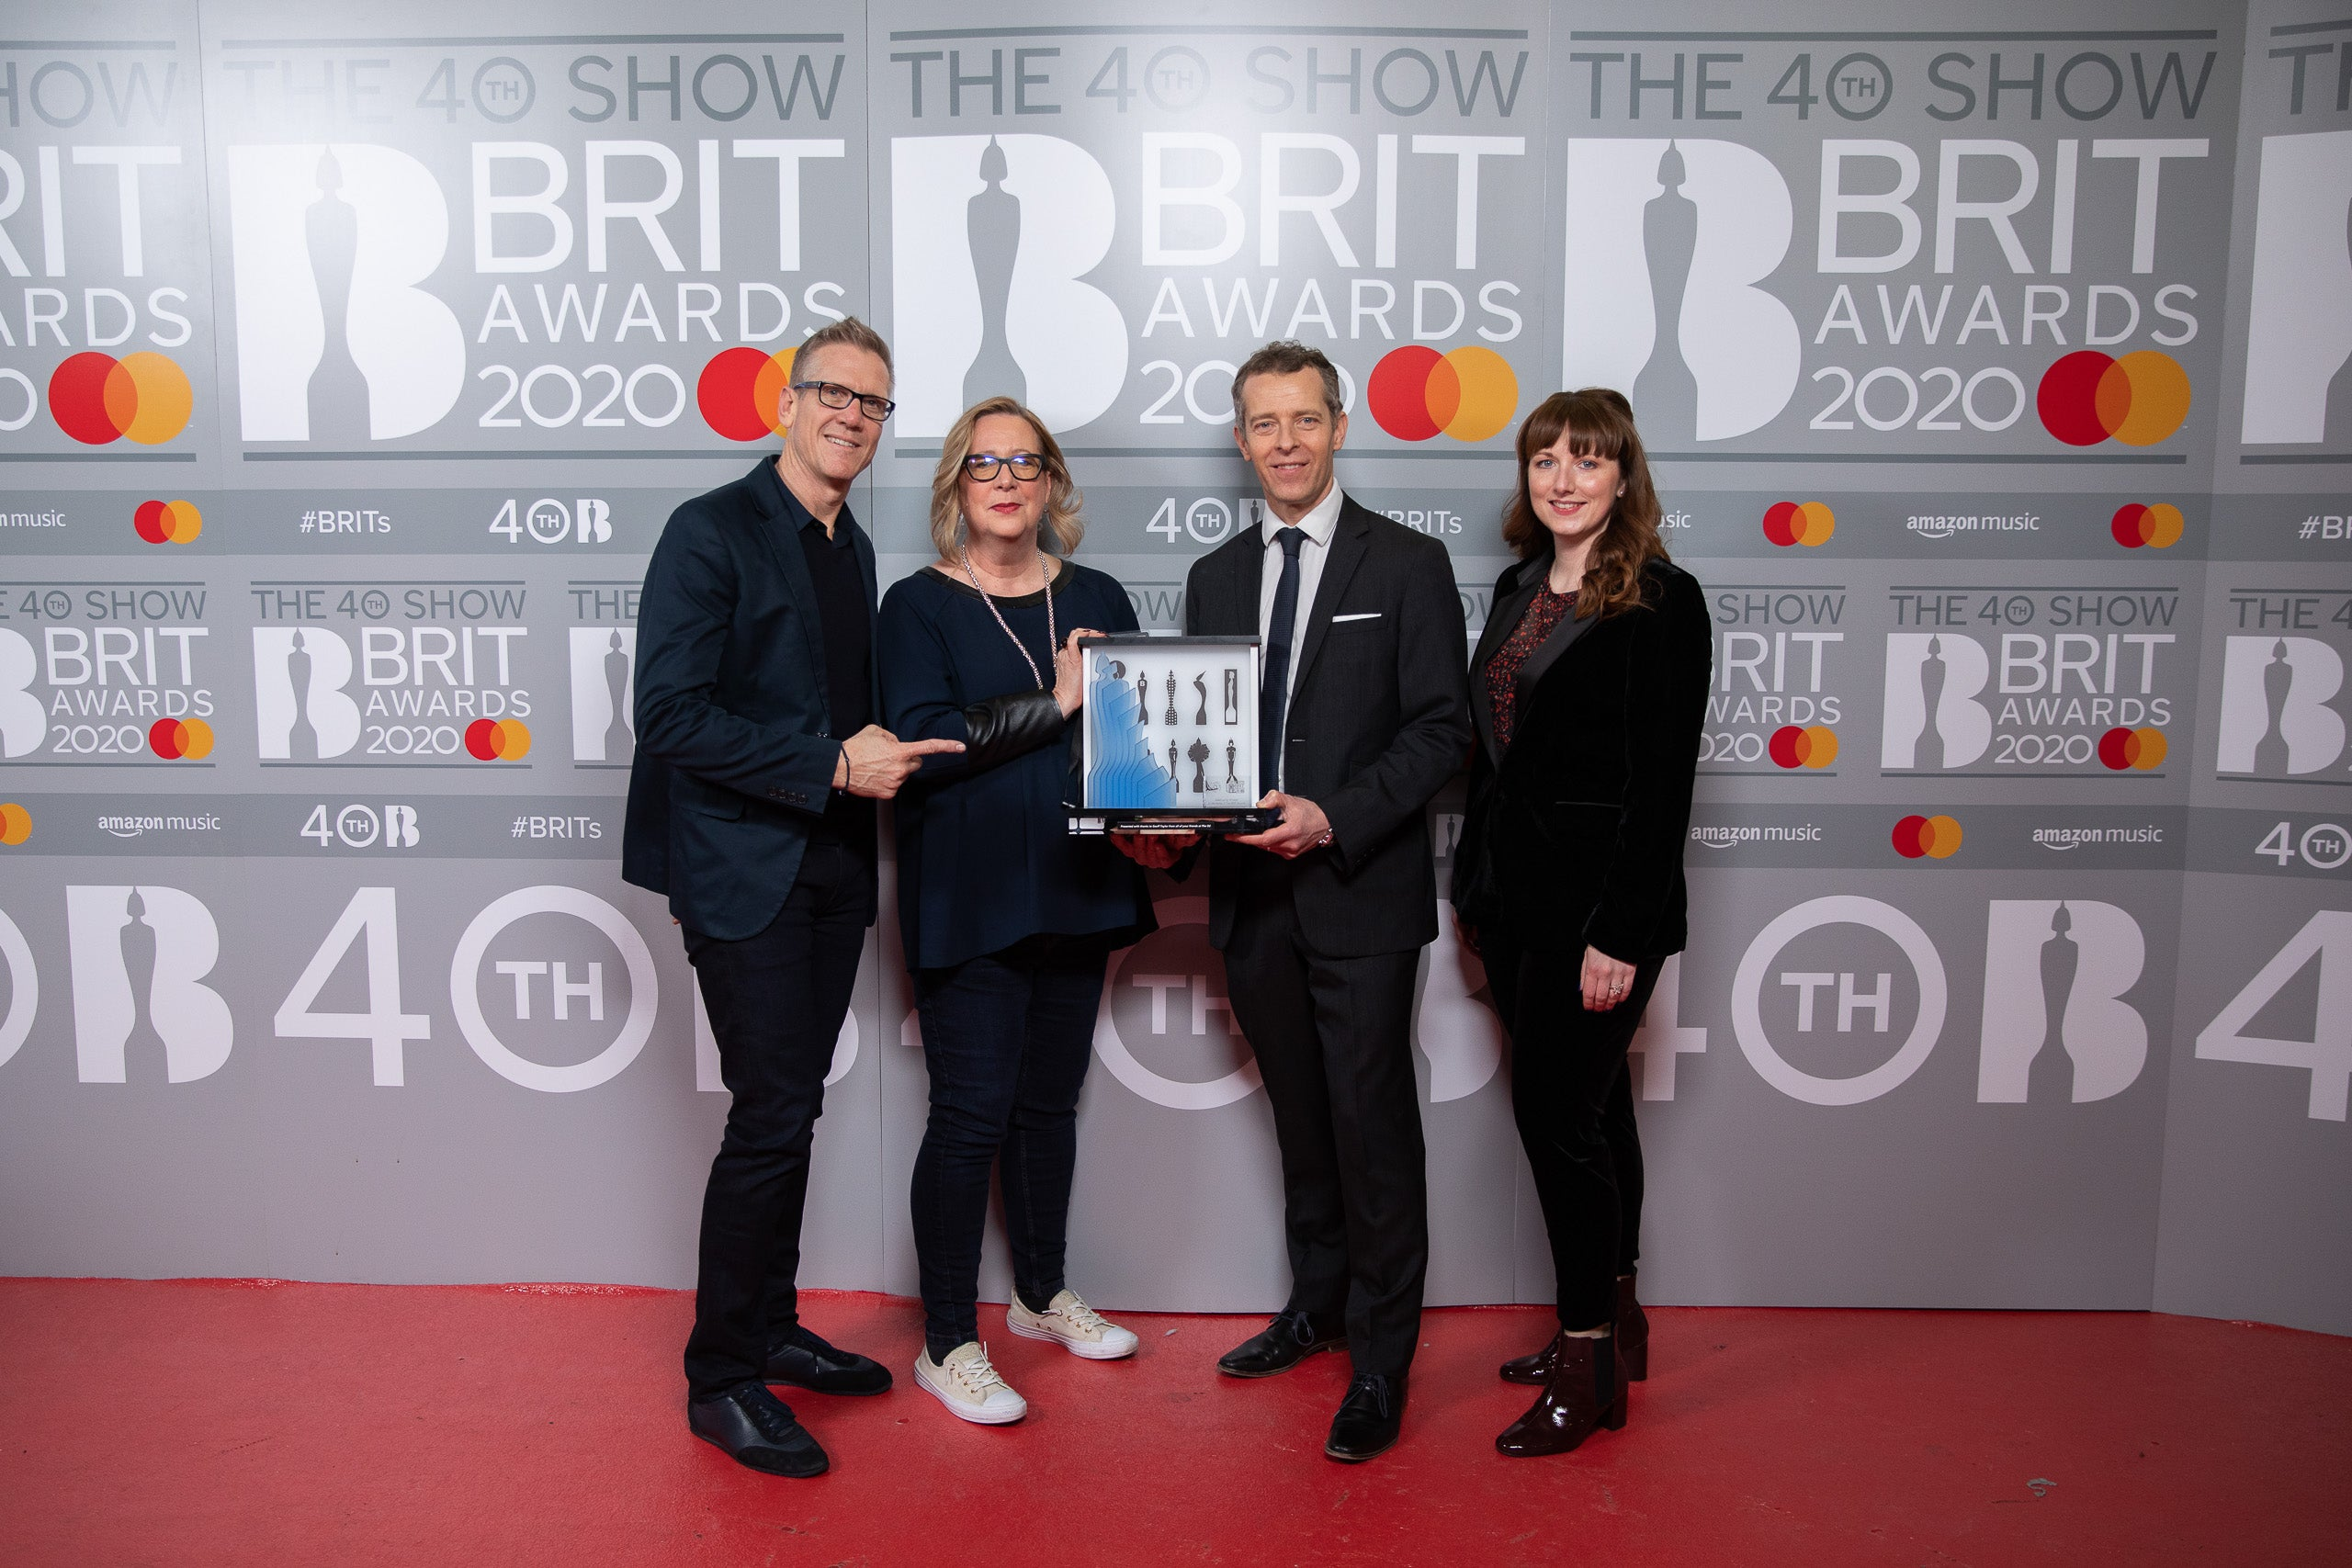 The BRITs celebrates 10 years at The O2